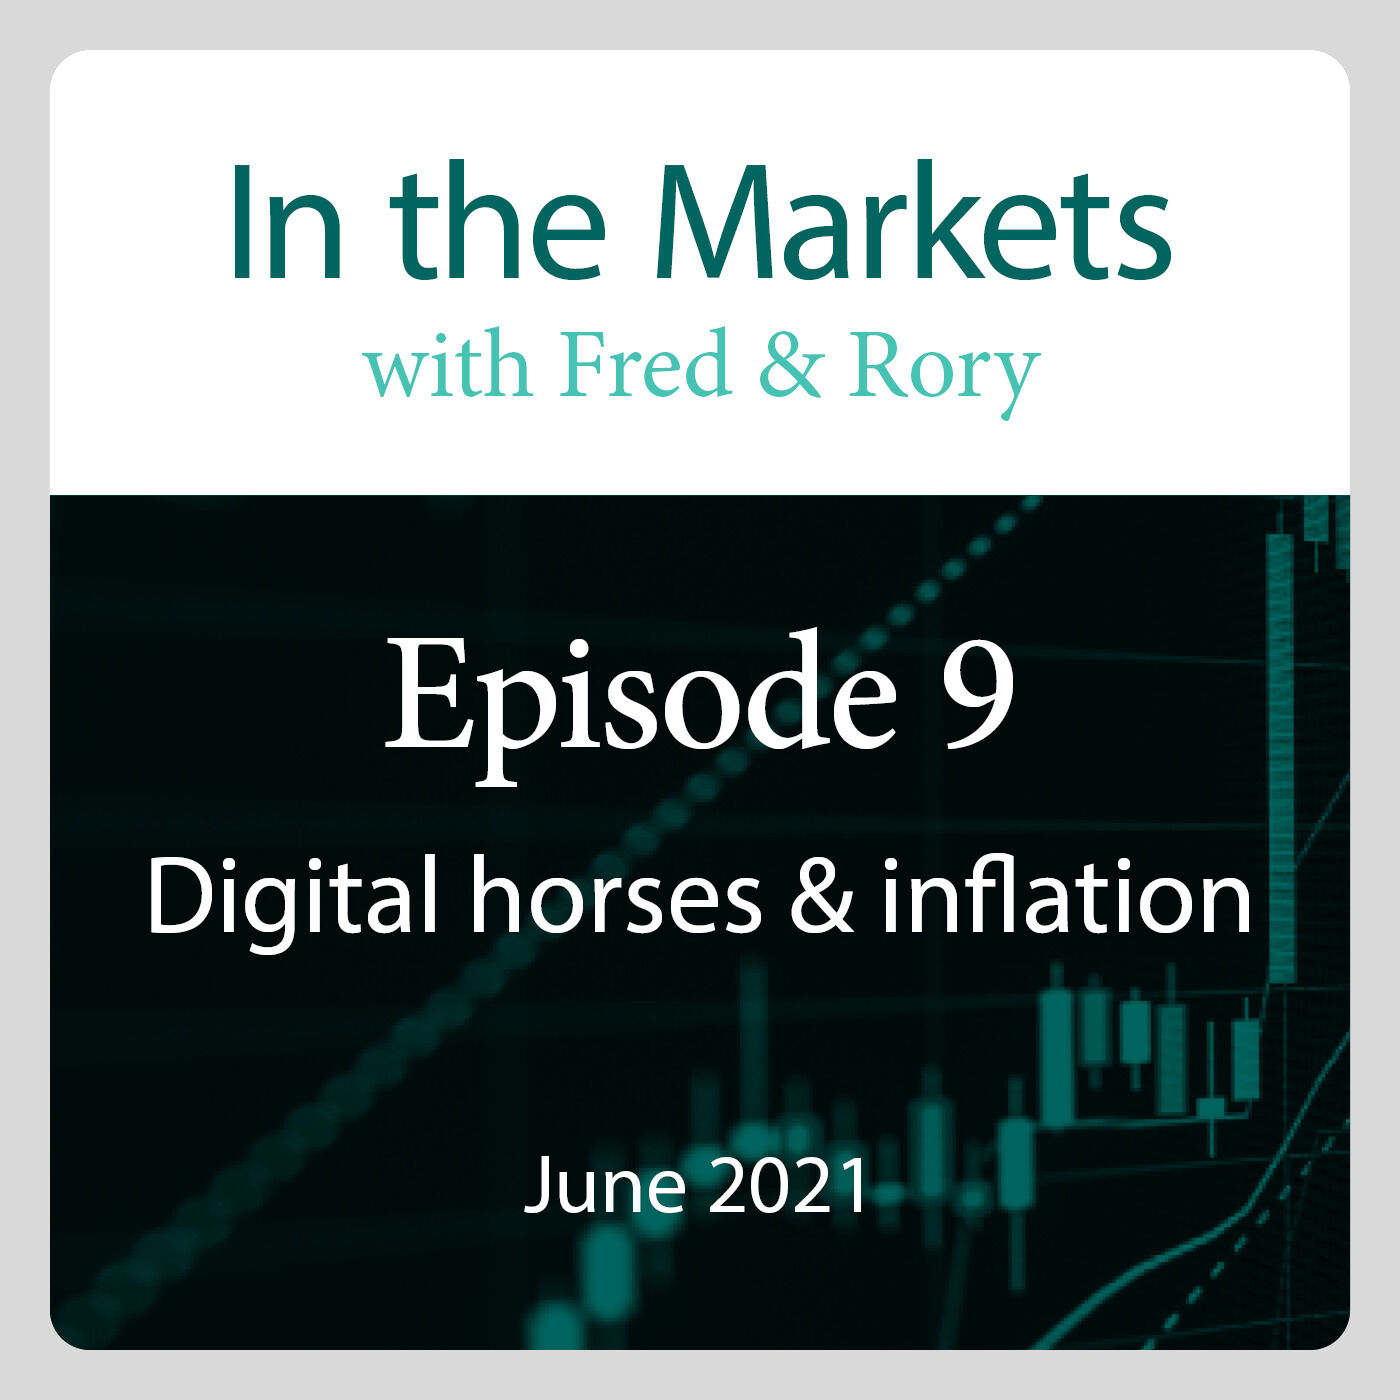 June 2021: Riding the digital horse & inflation